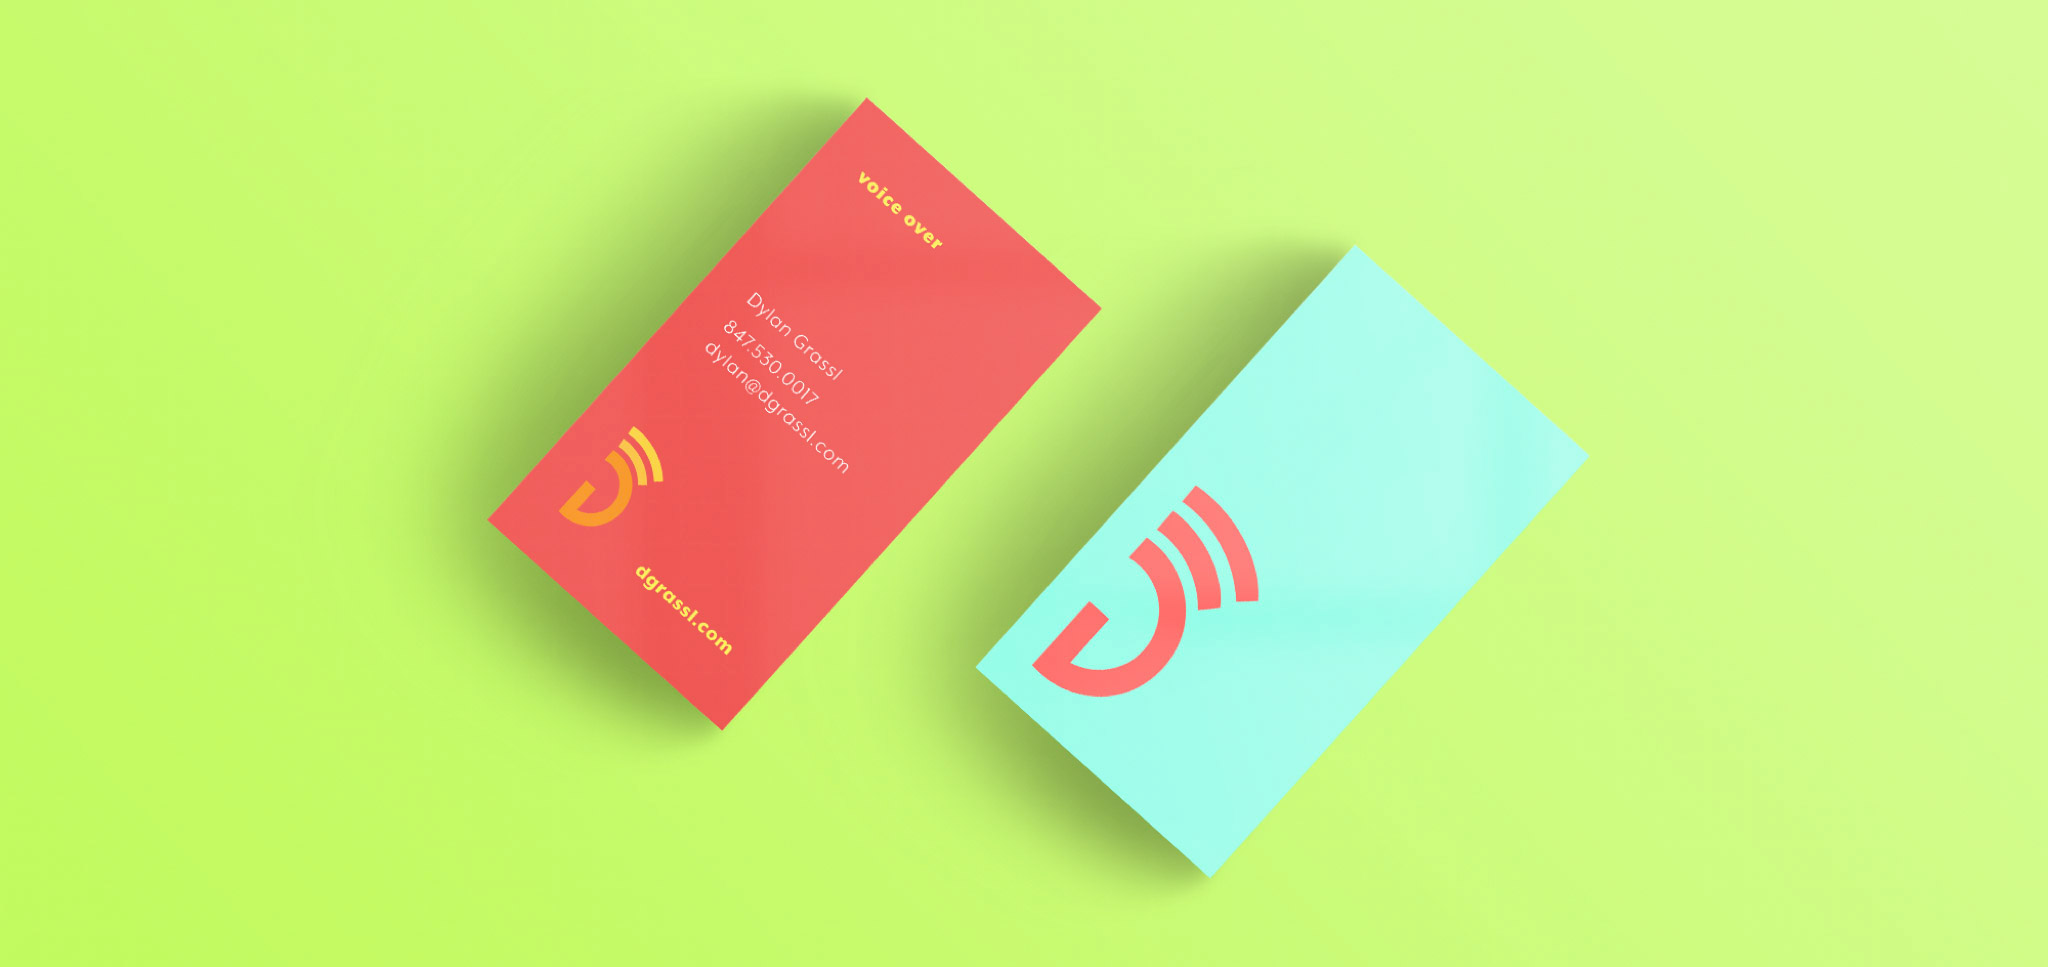 Get it got creative freelance voice over artist dylan grassl this image shows the business card design the colors are extremely loud colourmoves